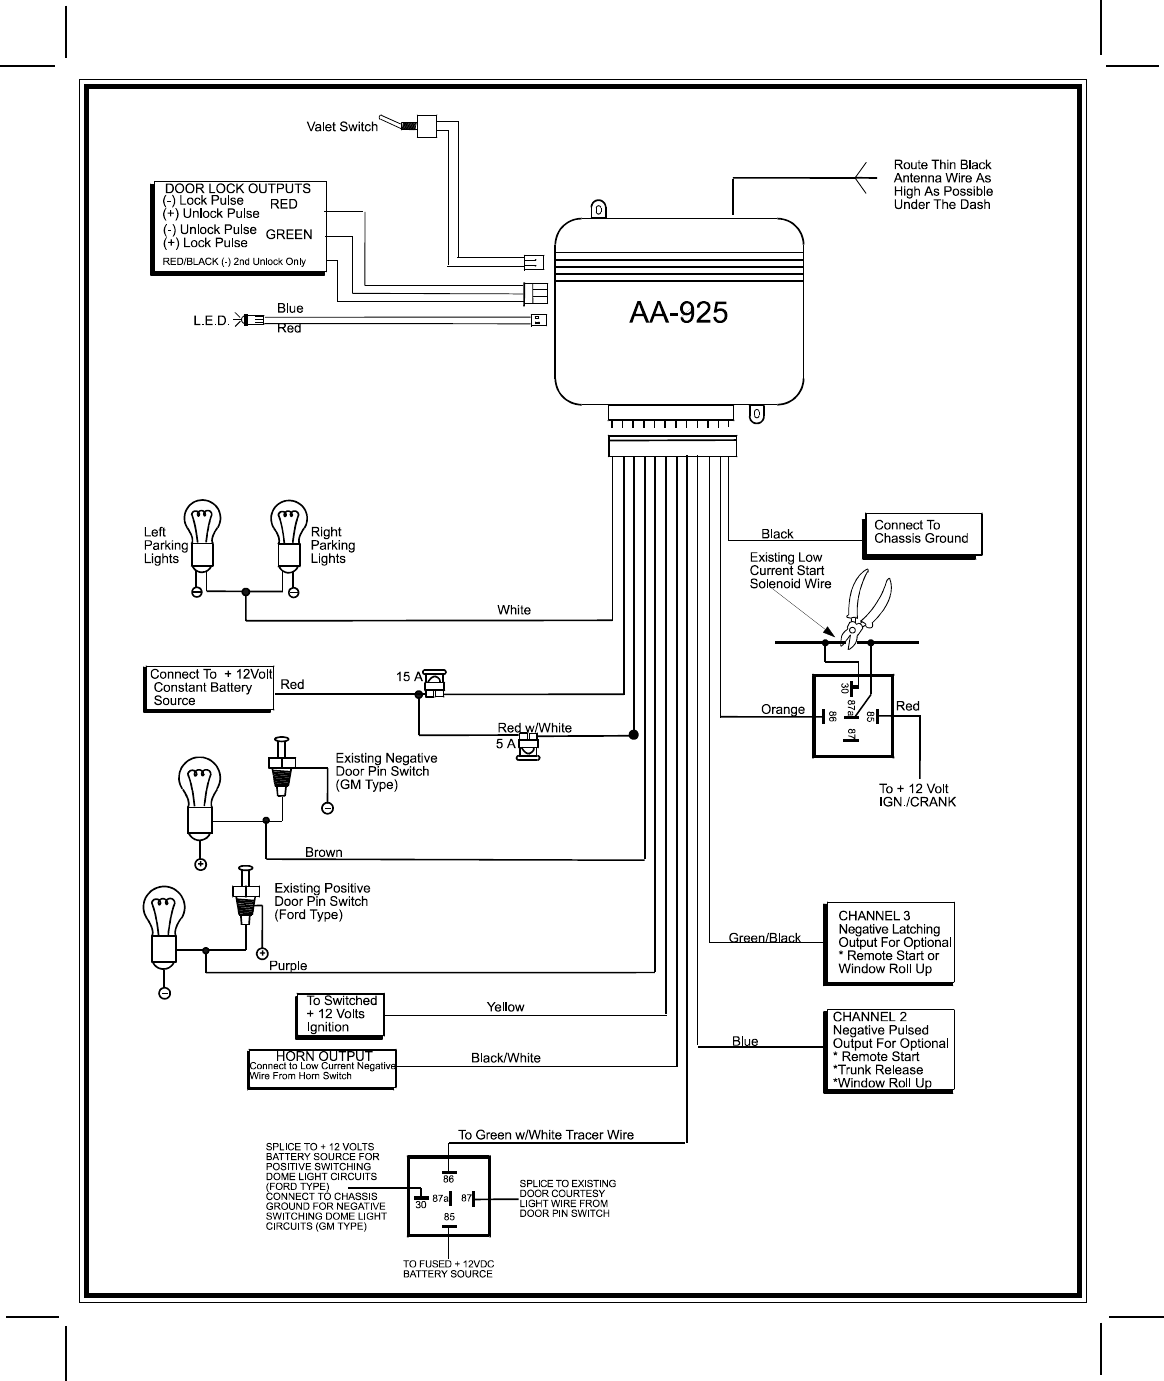 Automotive Wiring Harness Design Guidelines Pdf